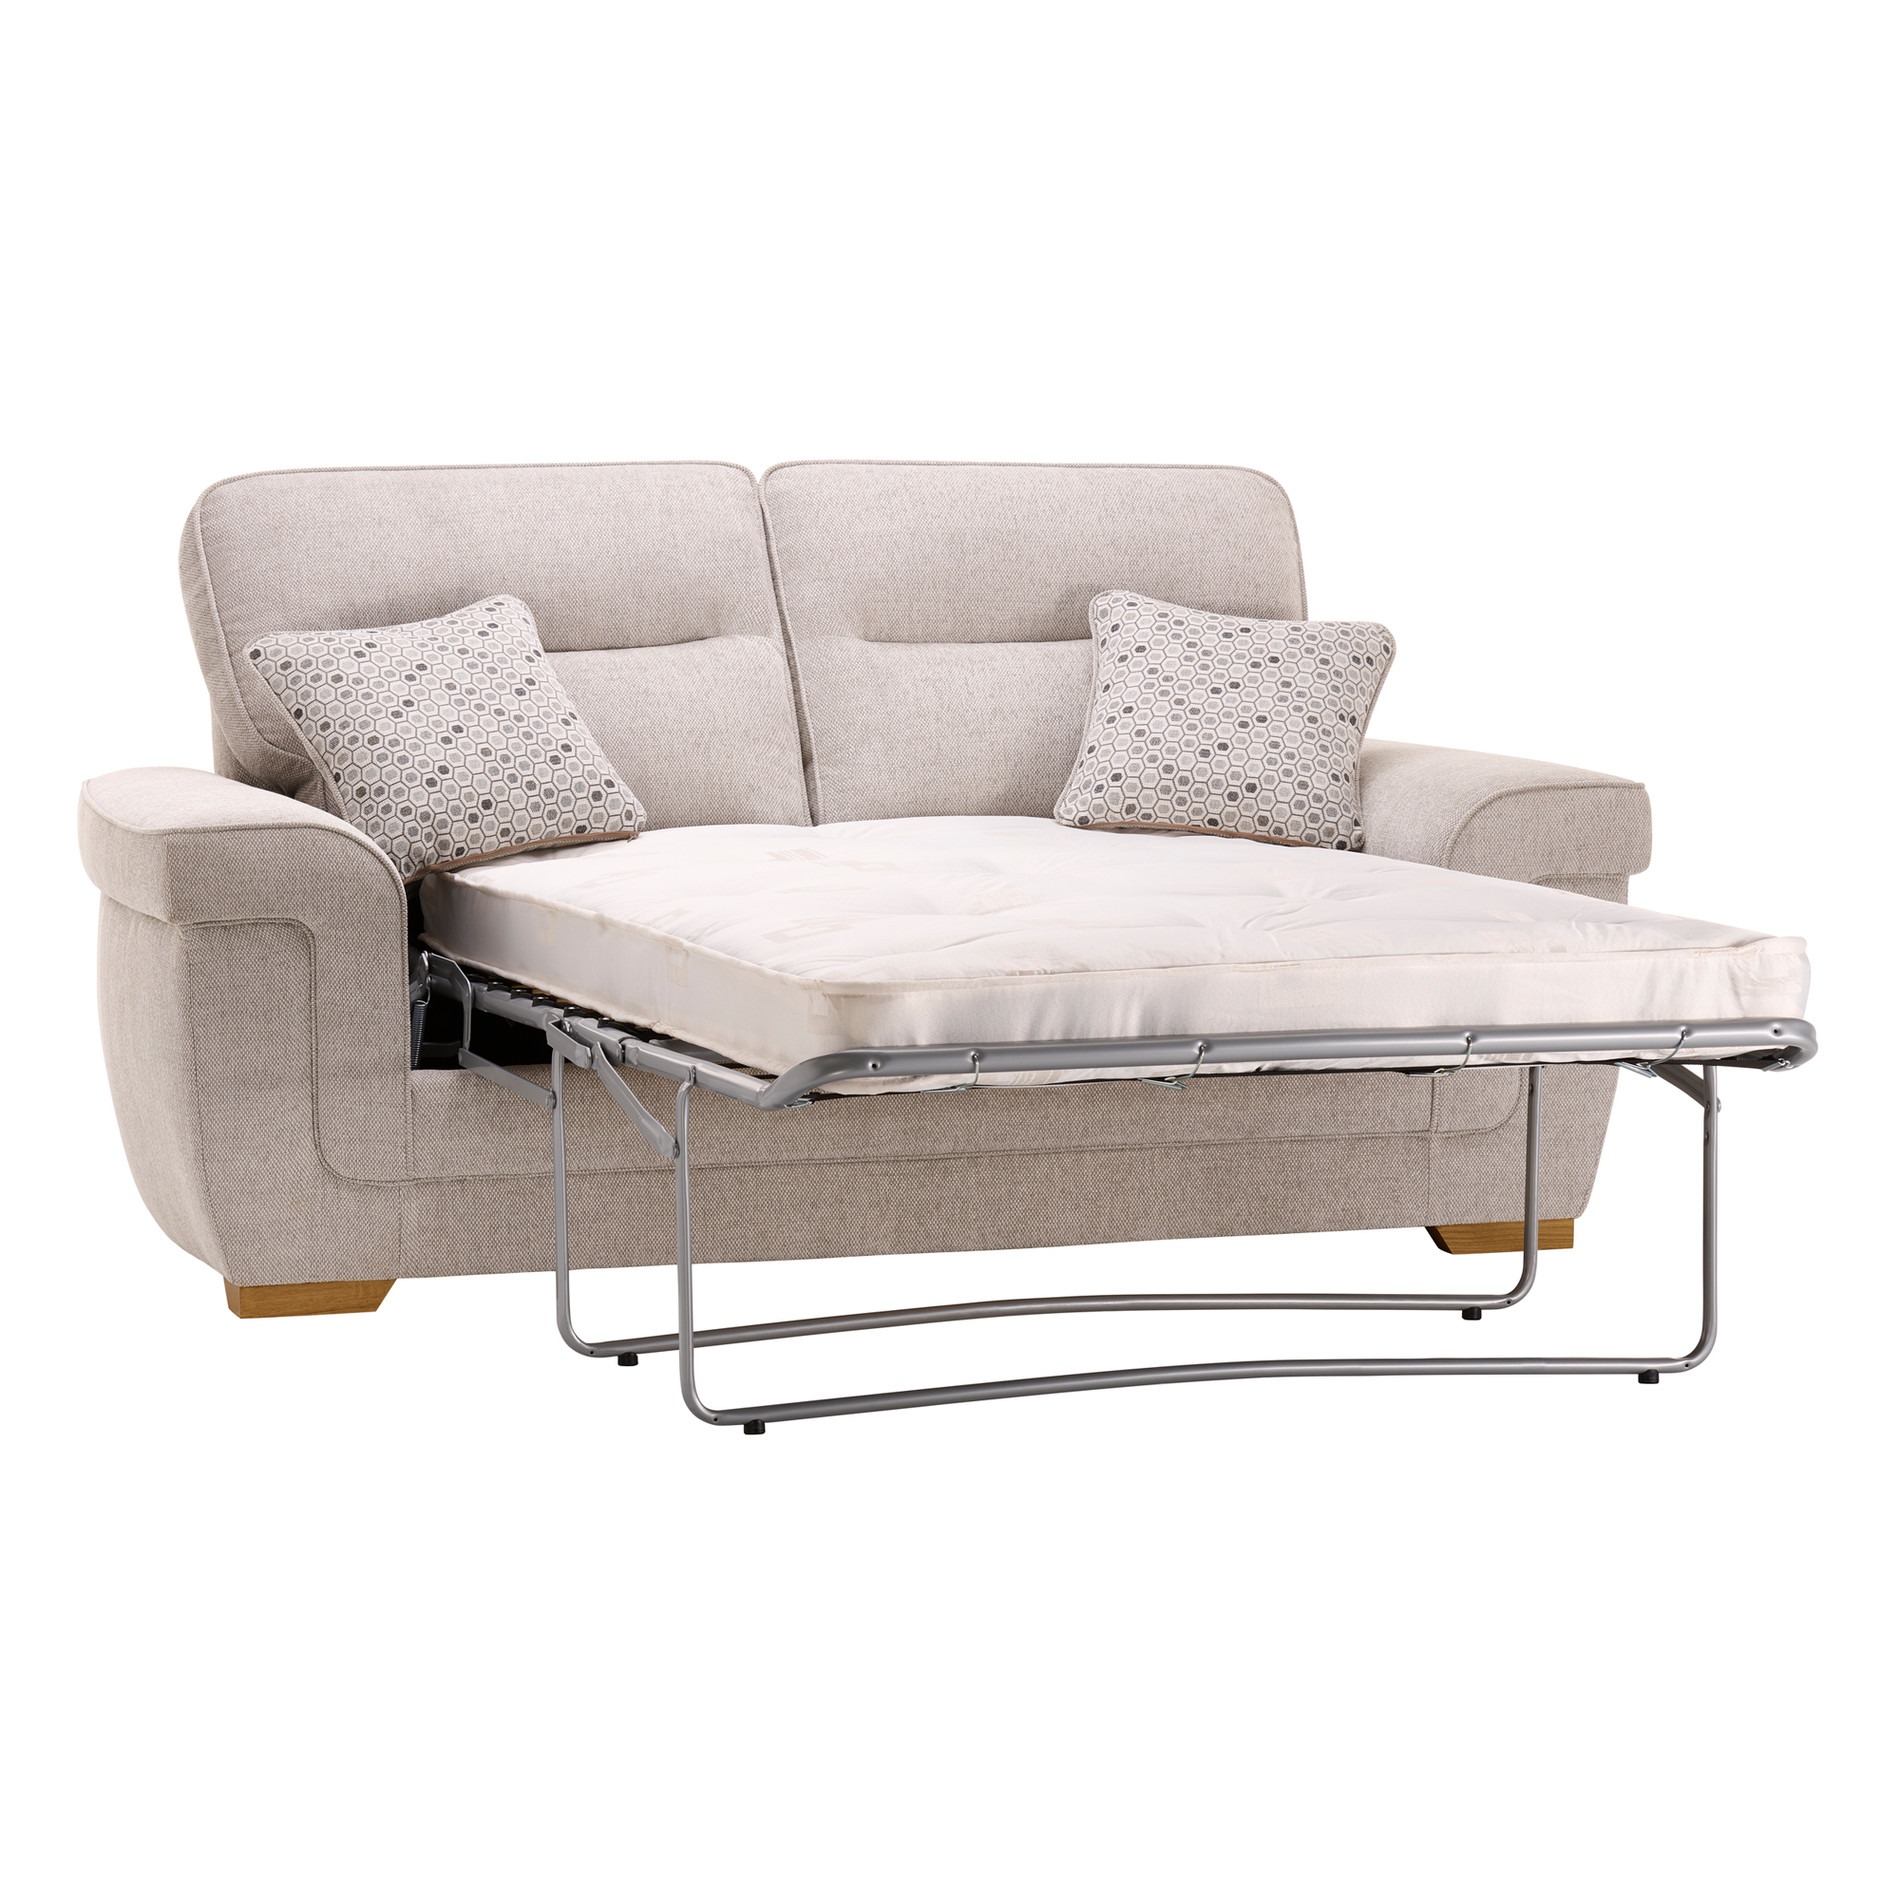 for incredible australia outplacement bed mattresses design couch replacement replacements out full ideas of pull sofa mattress size wondrous